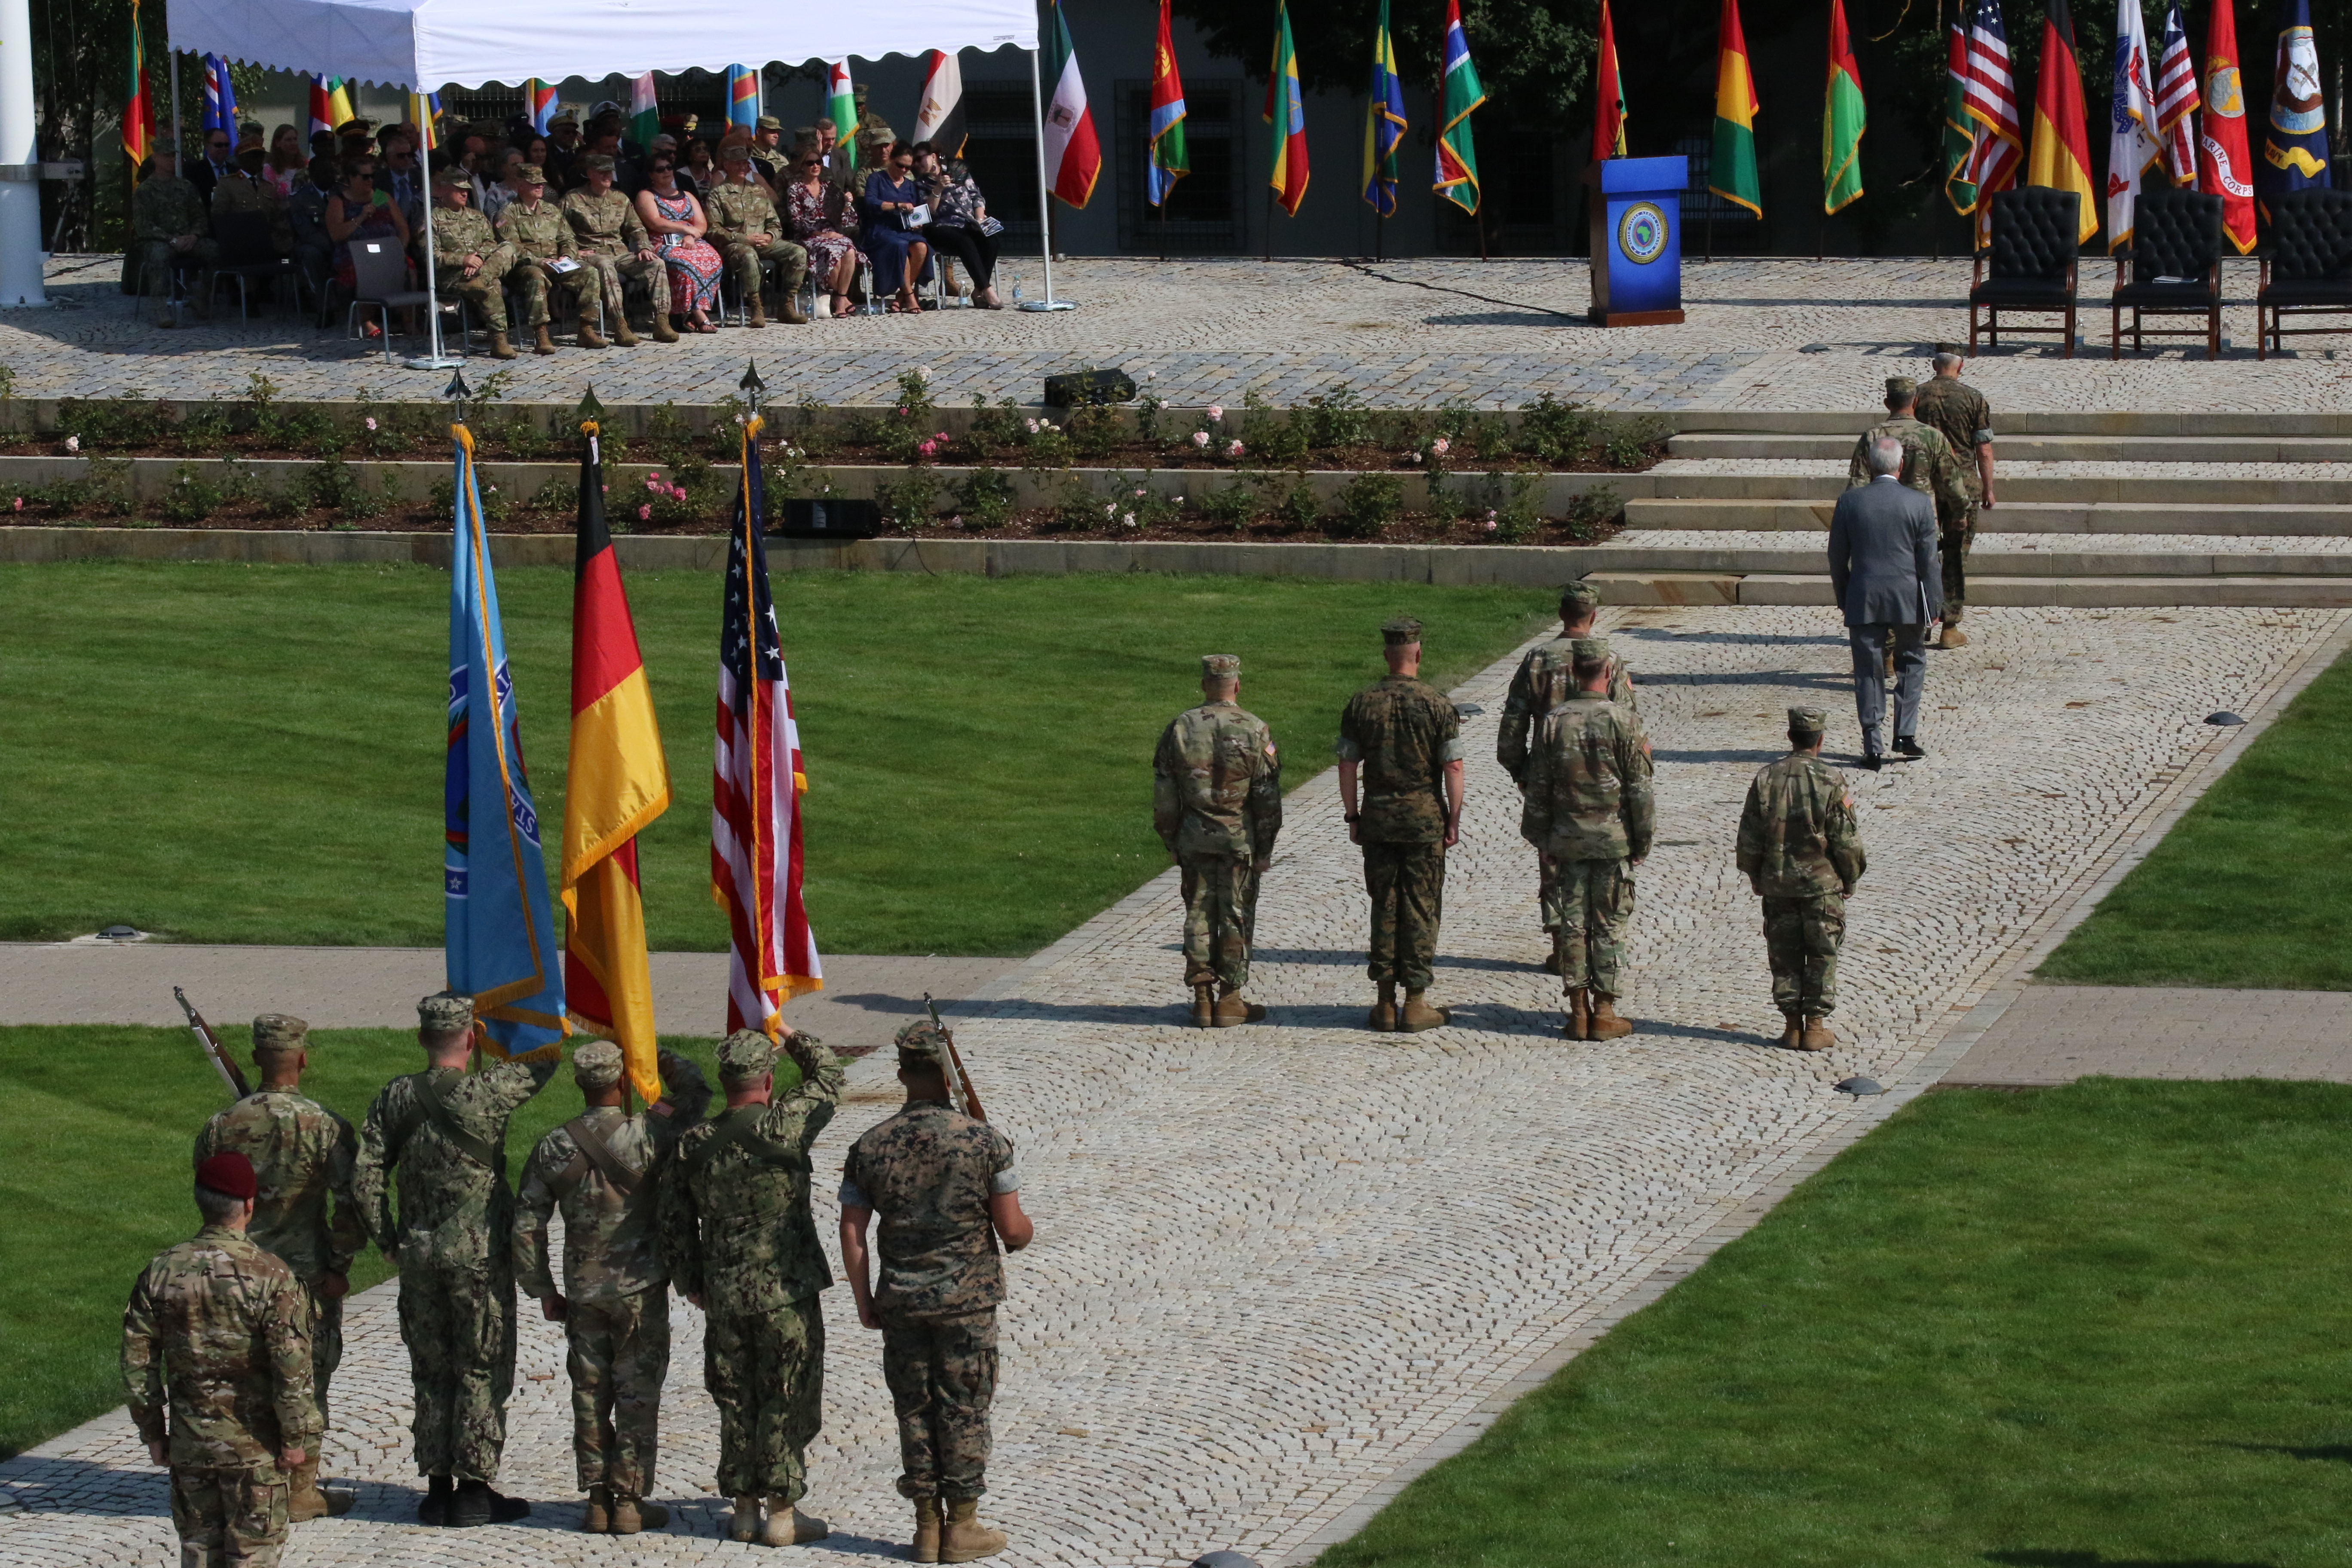 The official party arrives for the U.S. Africa Command change of command at Patch Barracks in Stuttgart, Germany, July 26, 2019. AFRICOM is one of six of the U.S. Defense Department's geographic unified commands and is responsible to the Secretary of Defense for military relations with African nations, the African Union, and African regional security organizations. (U.S. Army photo by Kendall Smith/Released)